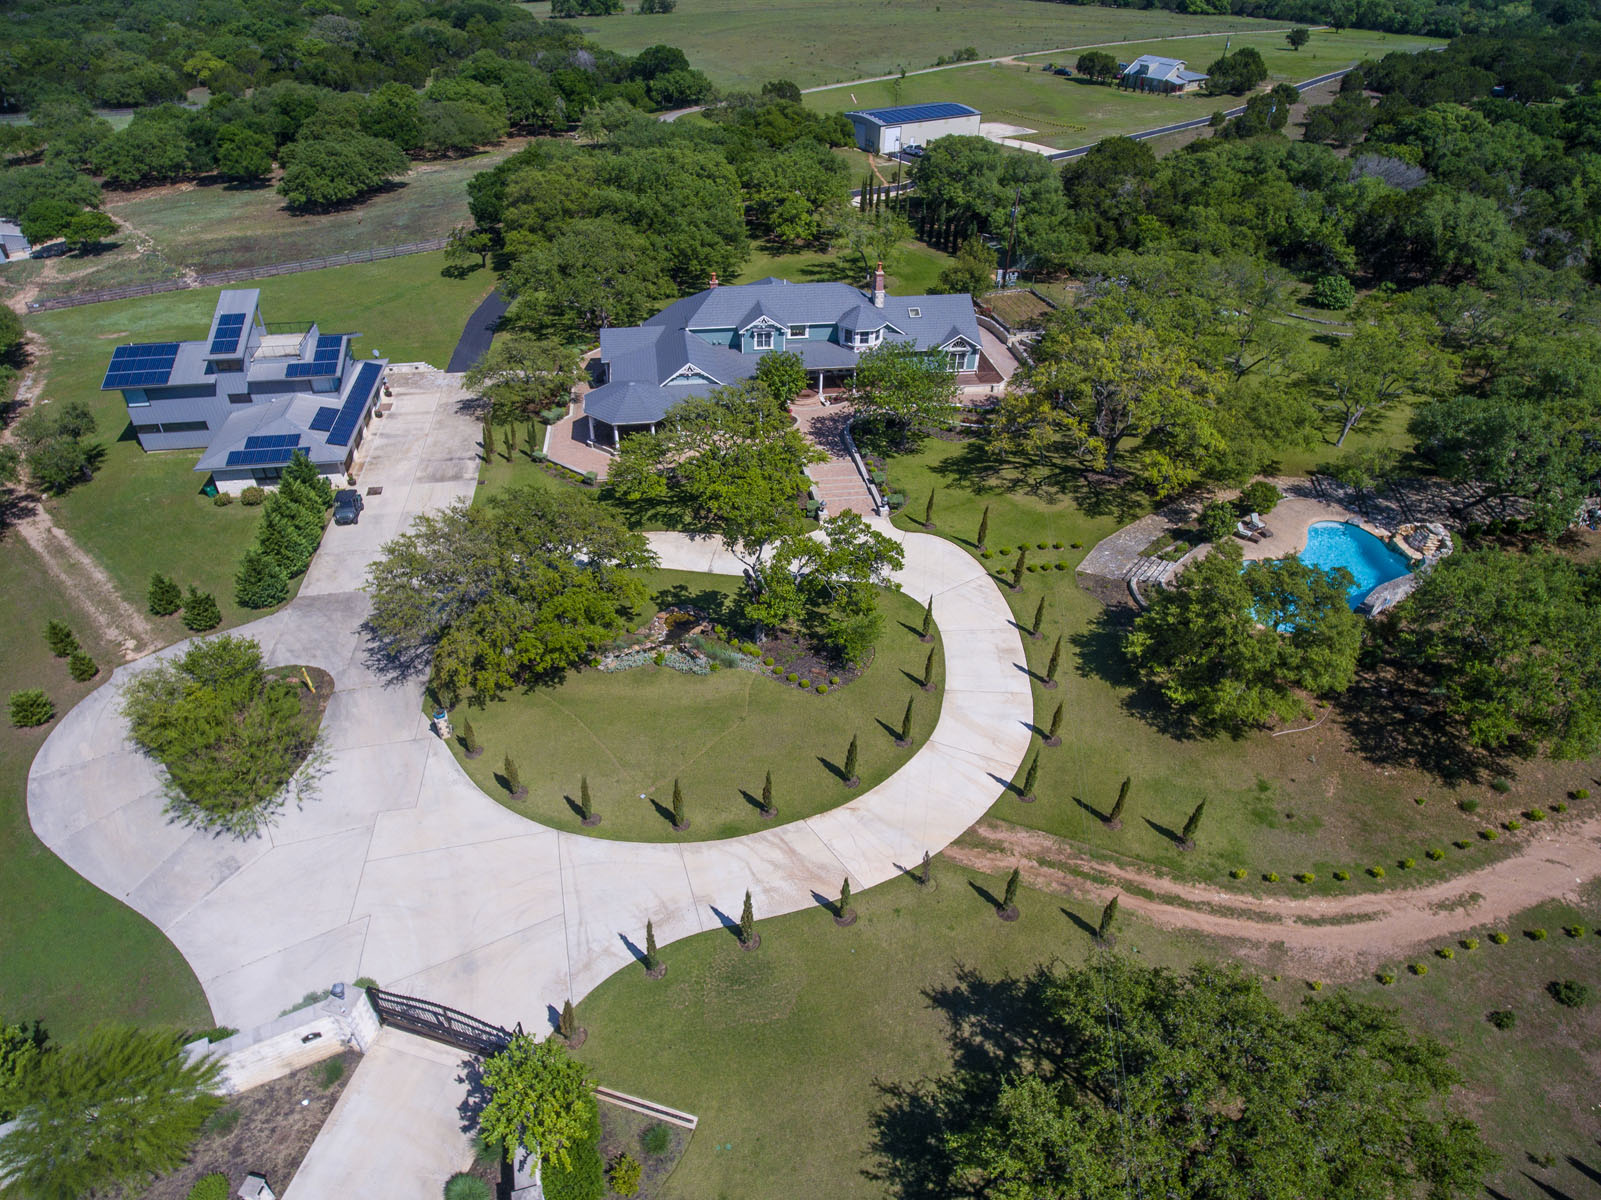 690 Autumn Ln, Dripping Springs, TX 78620